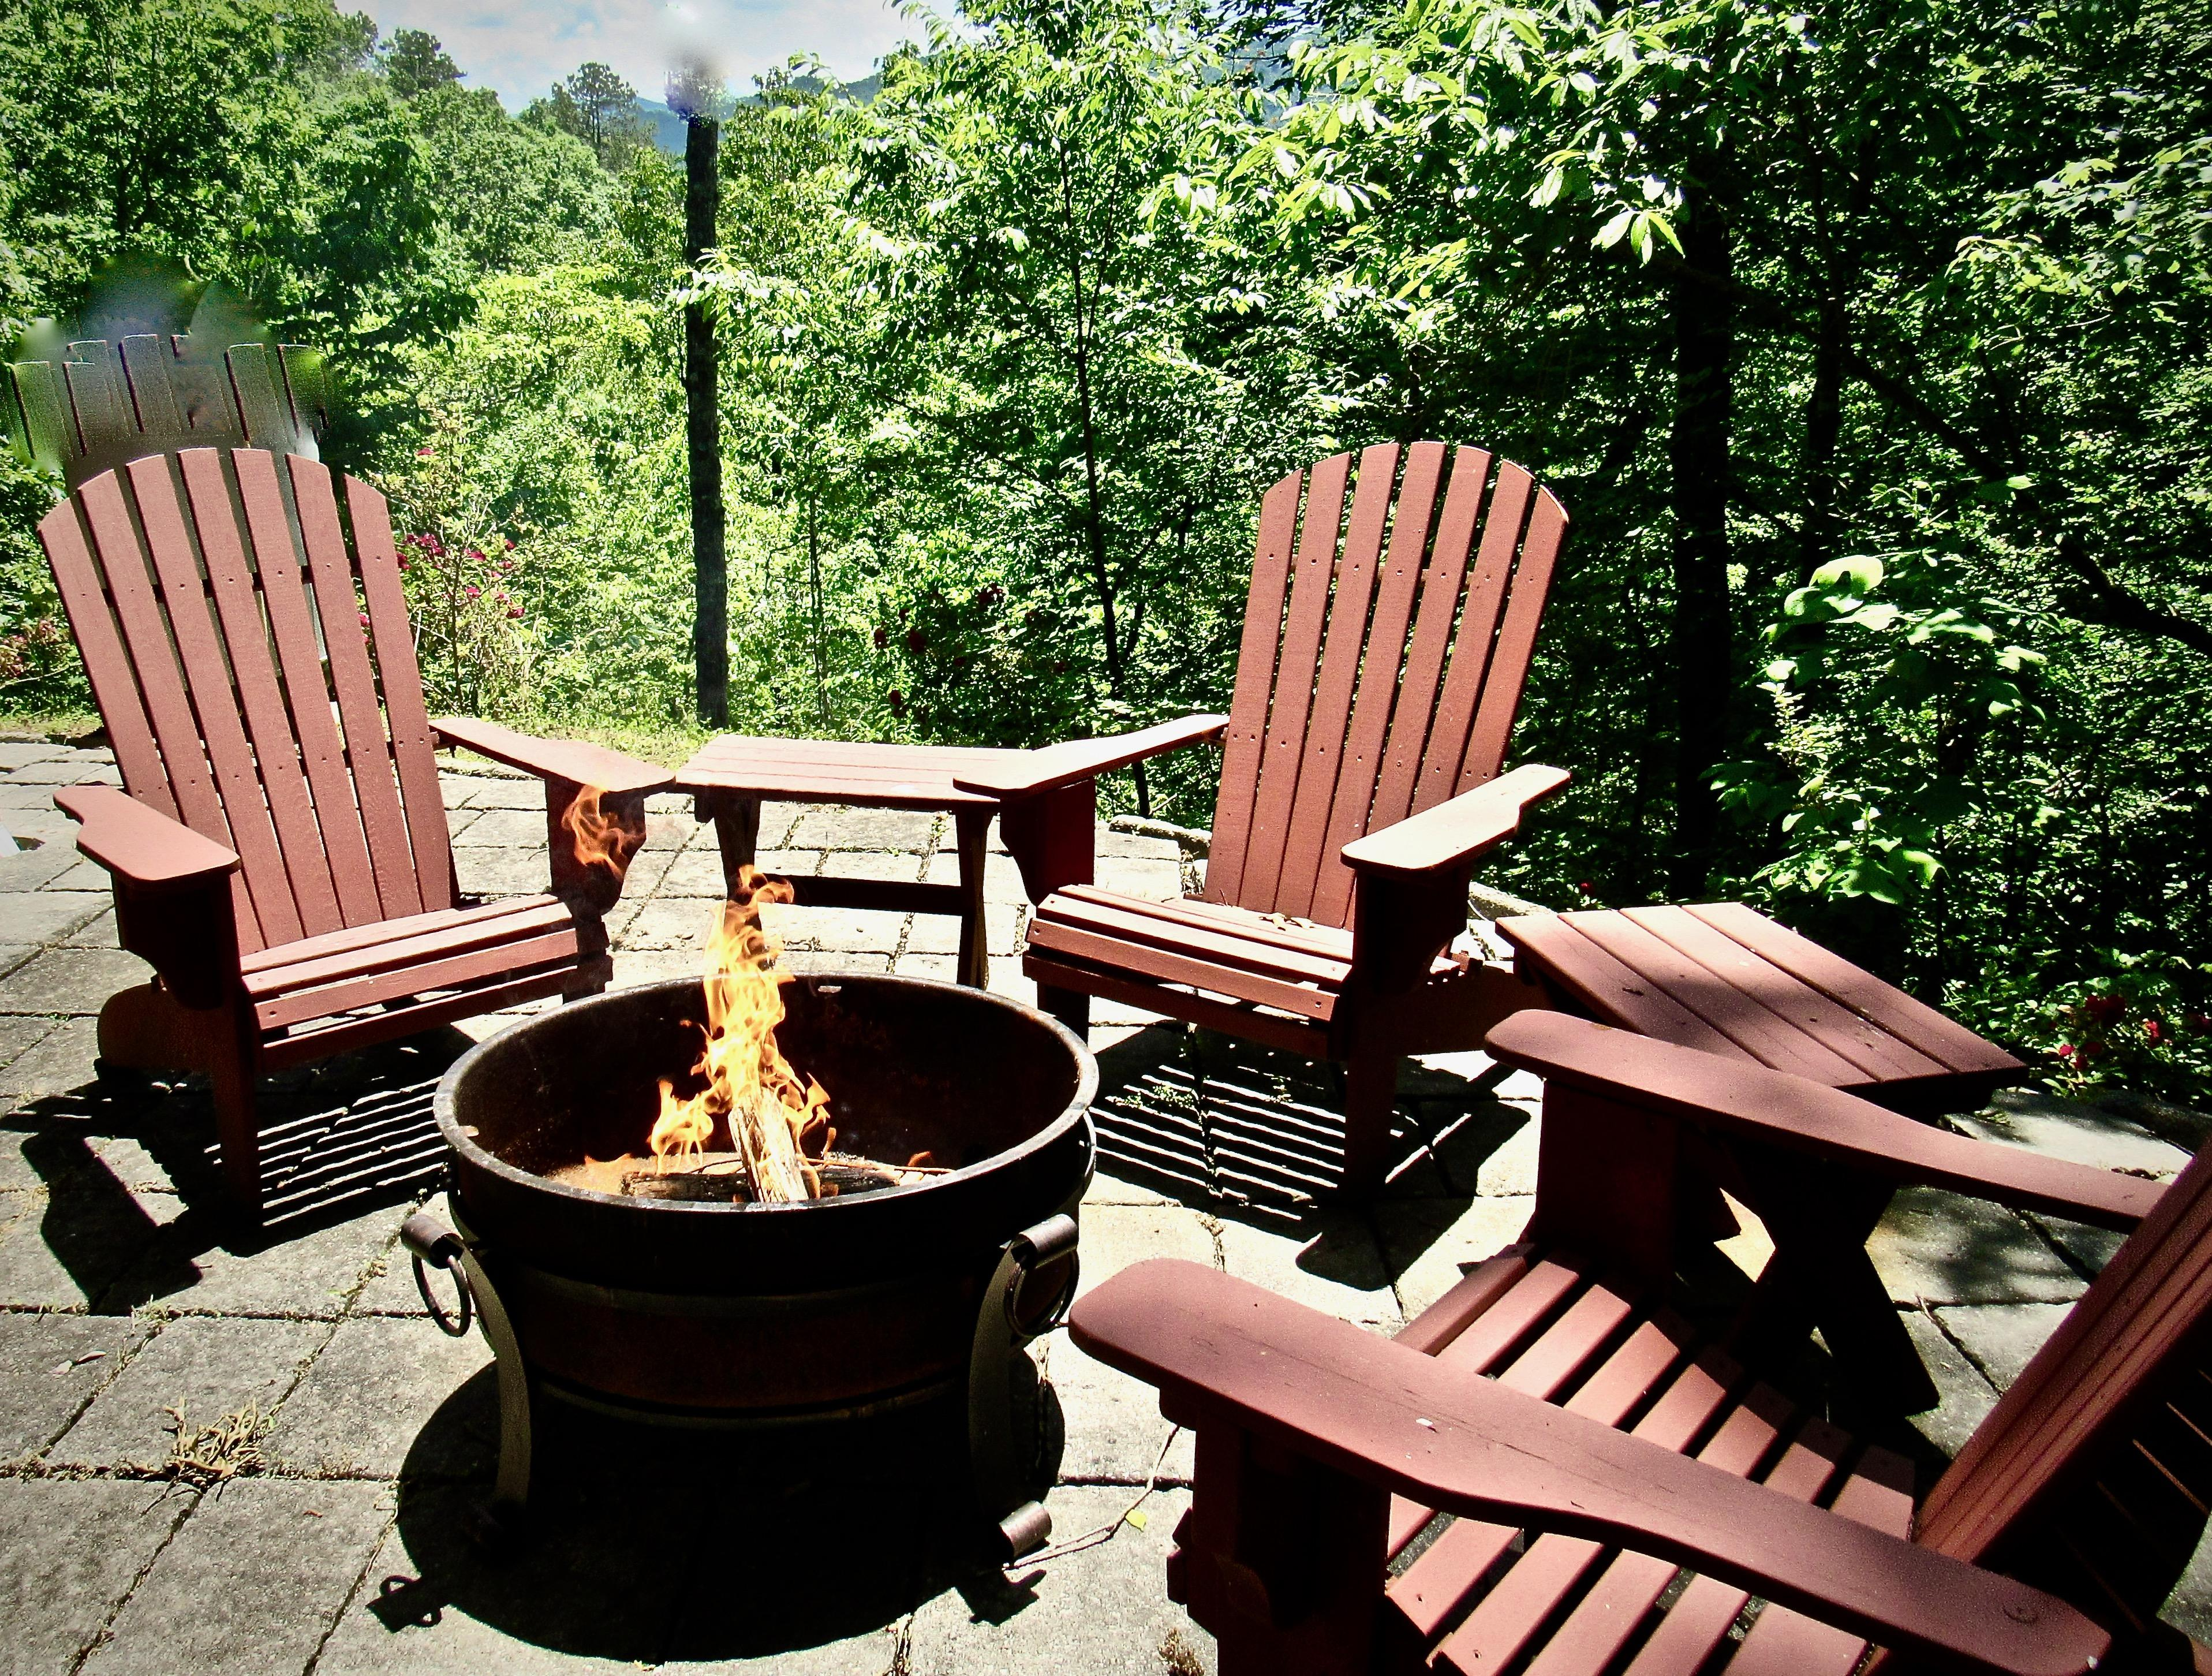 Bring the S'Mores and Gather Round, Make Memories...